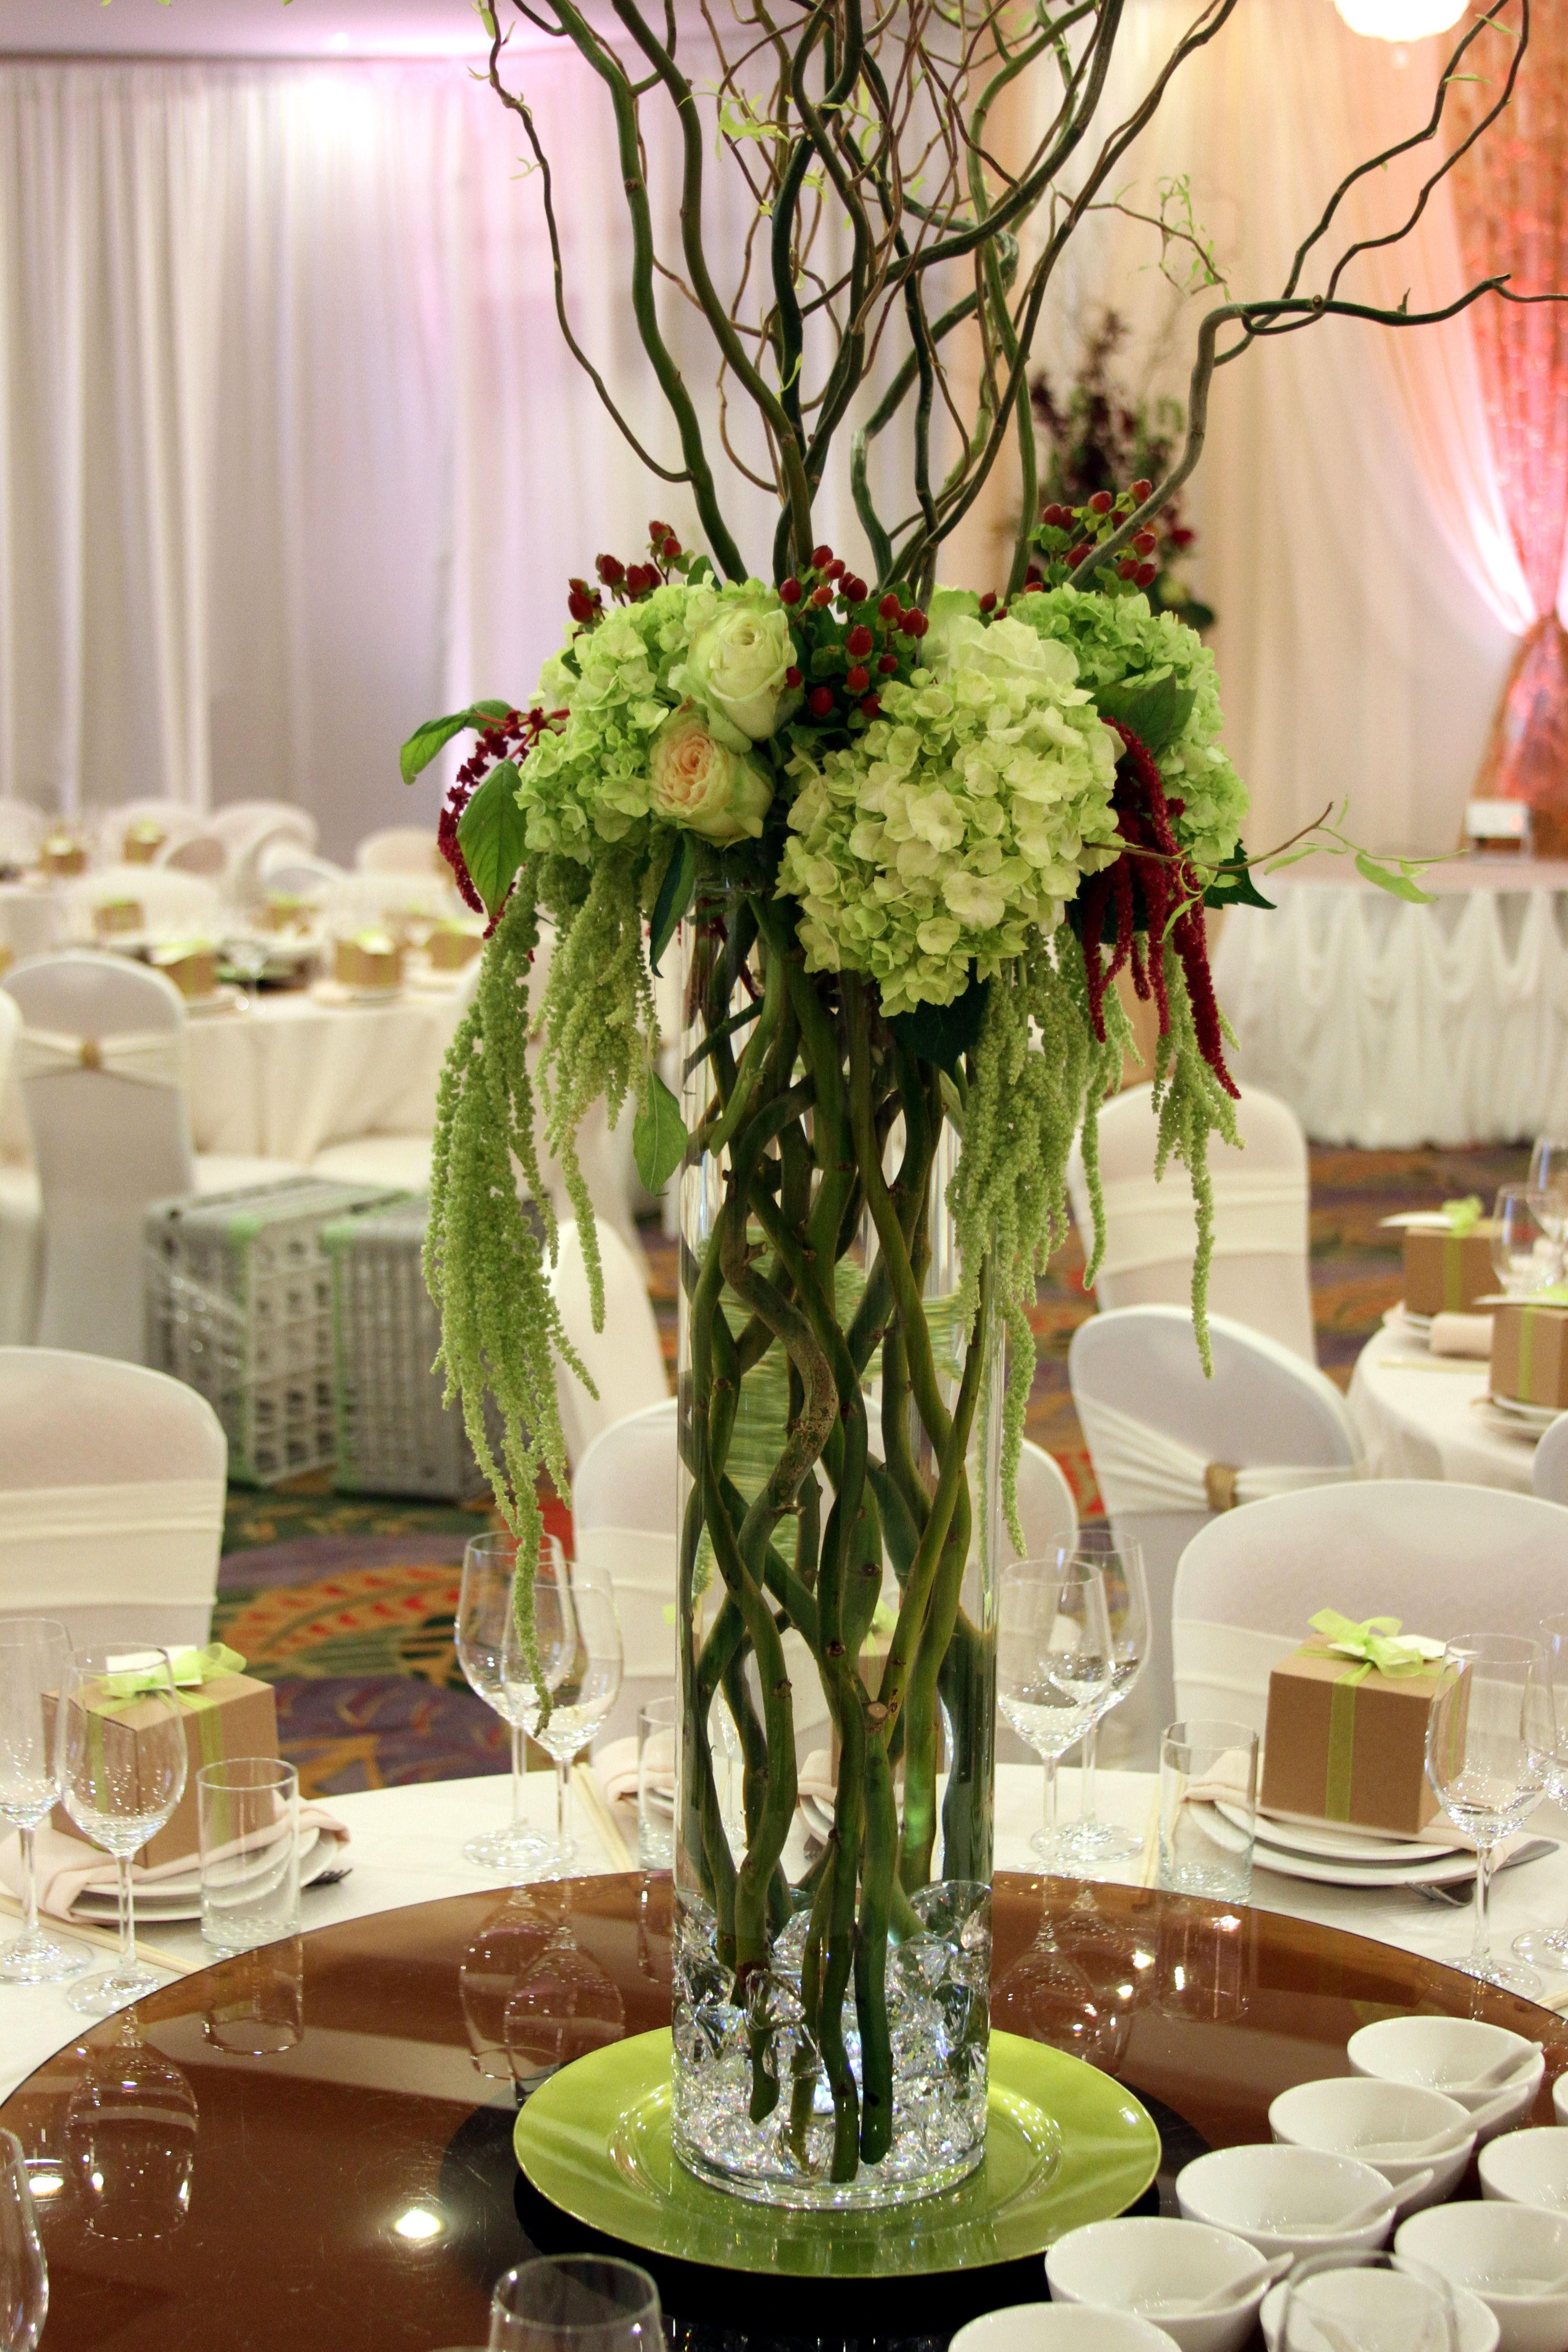 Tall Arrangements Of Budding Curly Willow With Collars Of Light Green Hydrangea Hangi Wedding Vase Centerpieces Large Flower Arrangements Wedding Centerpieces